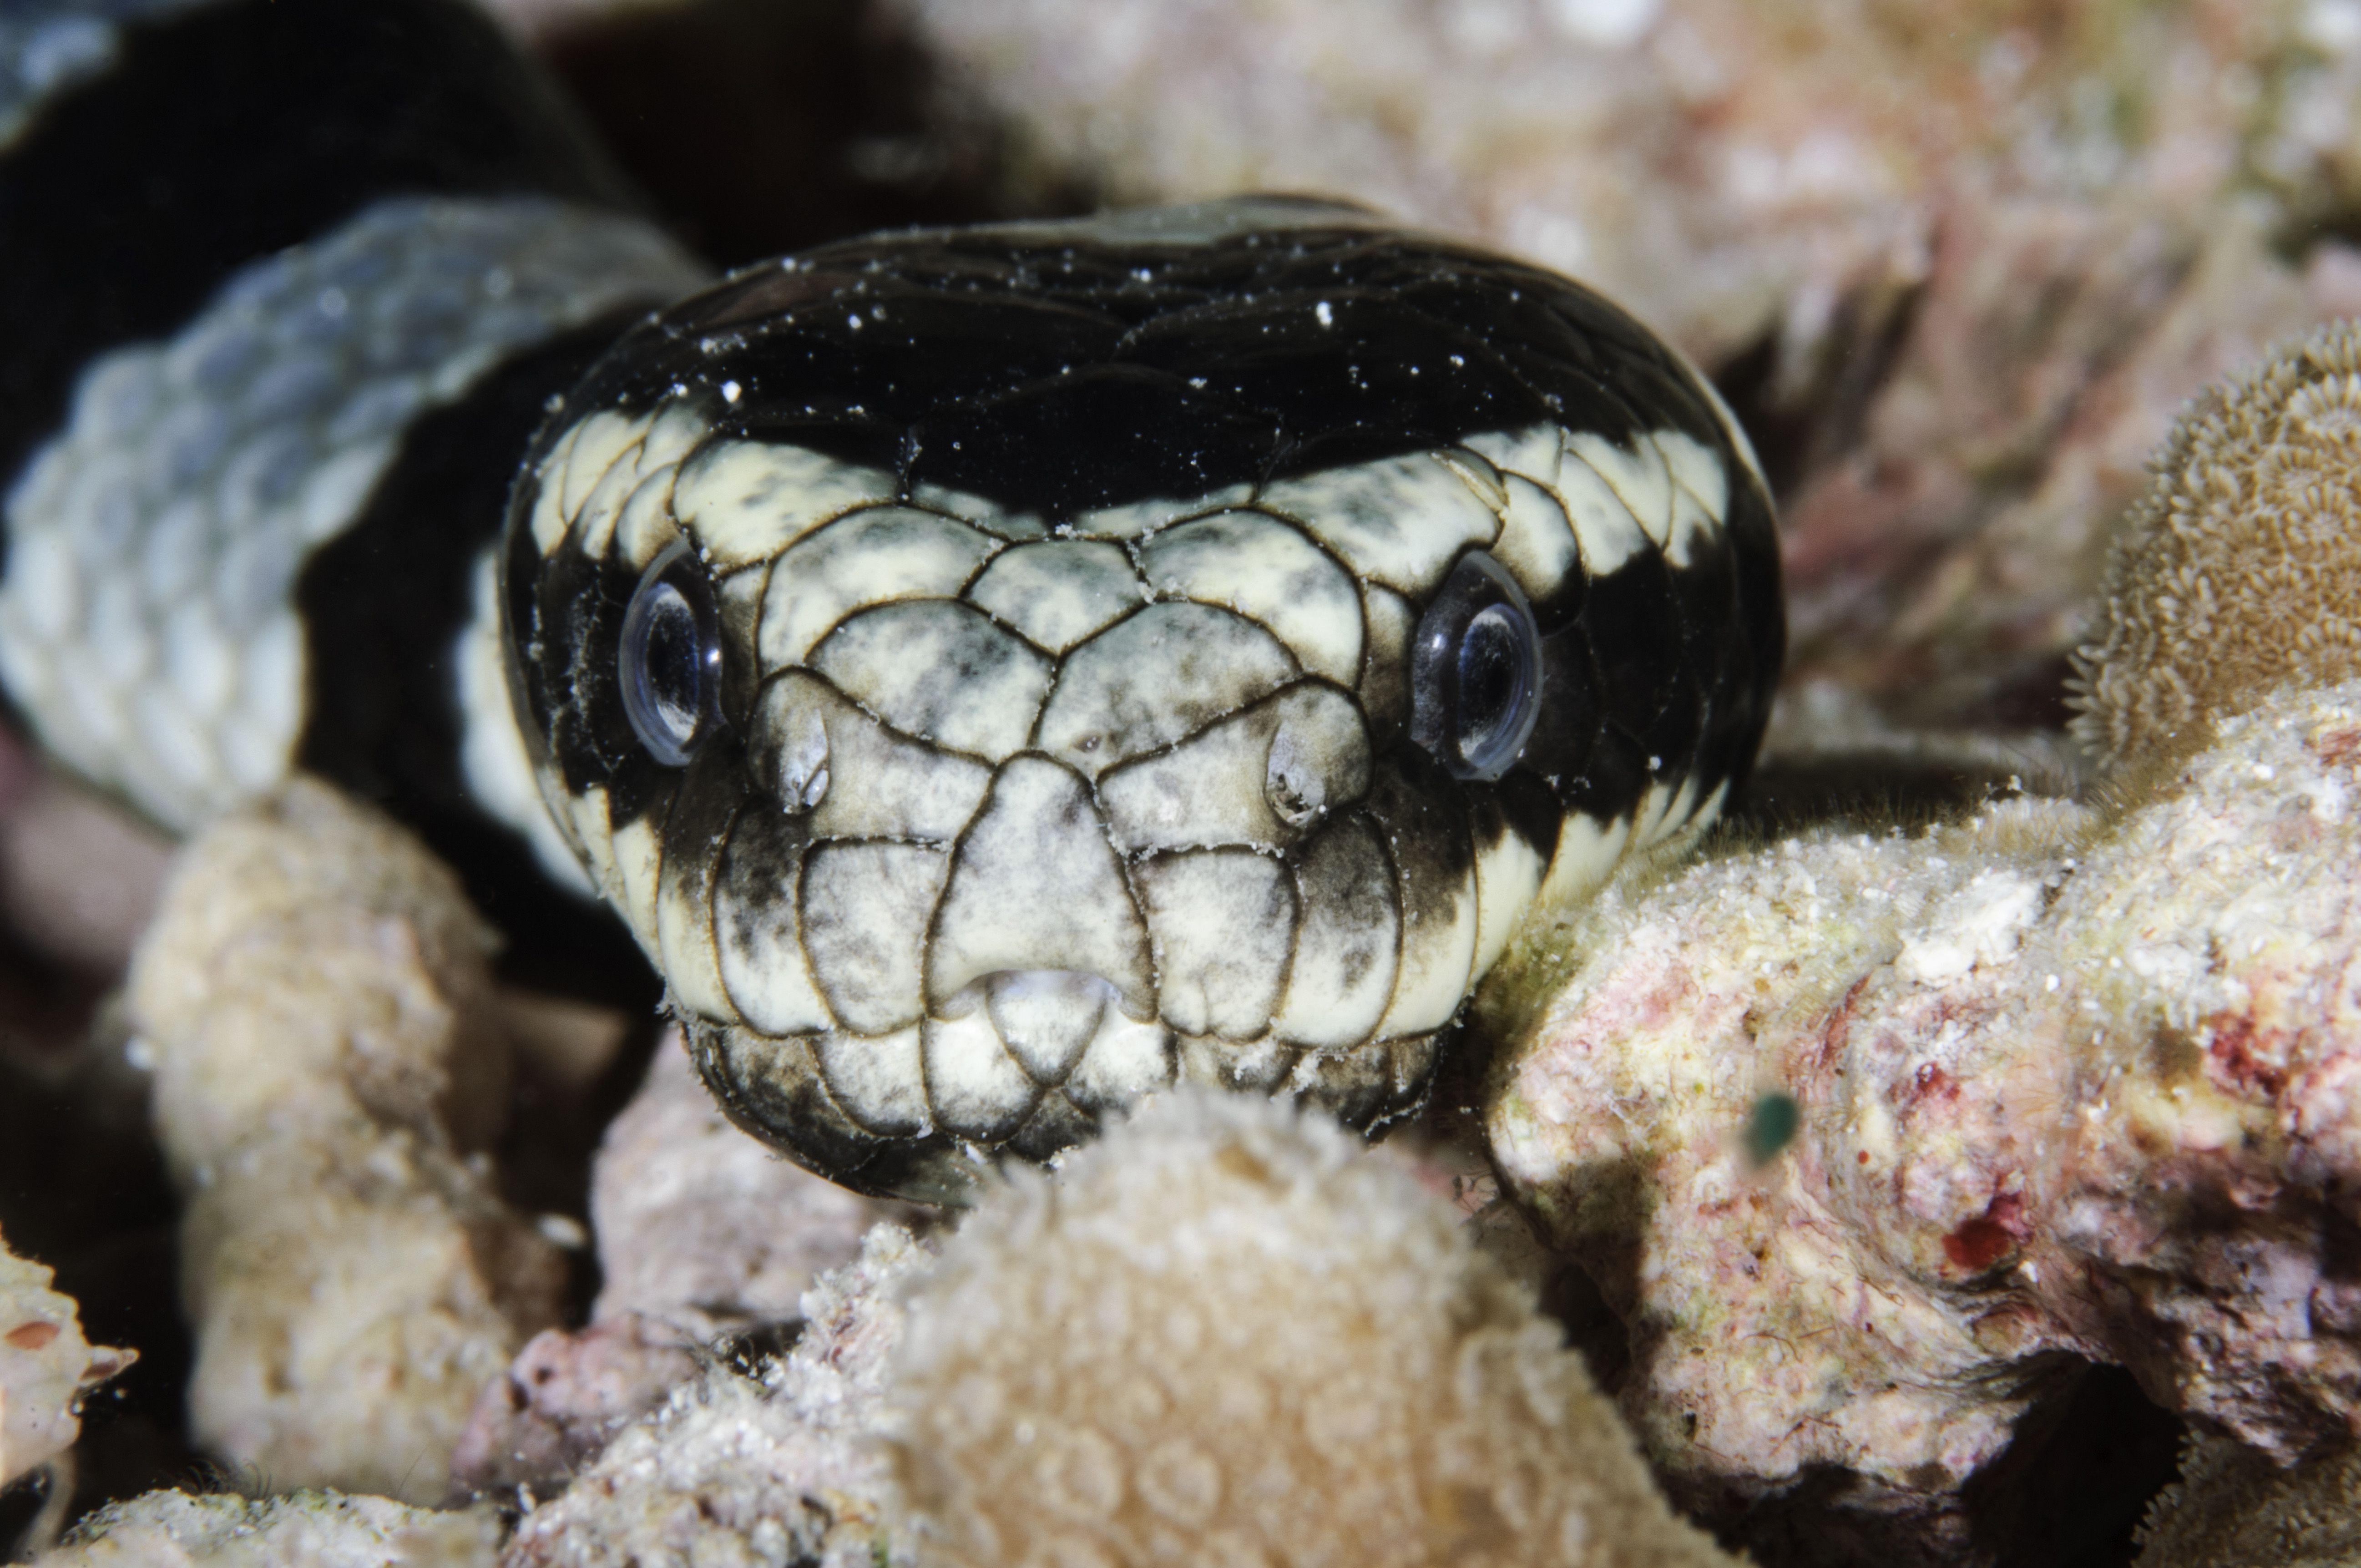 You can tell this is a krait because it has nostrils on either side of its snout.